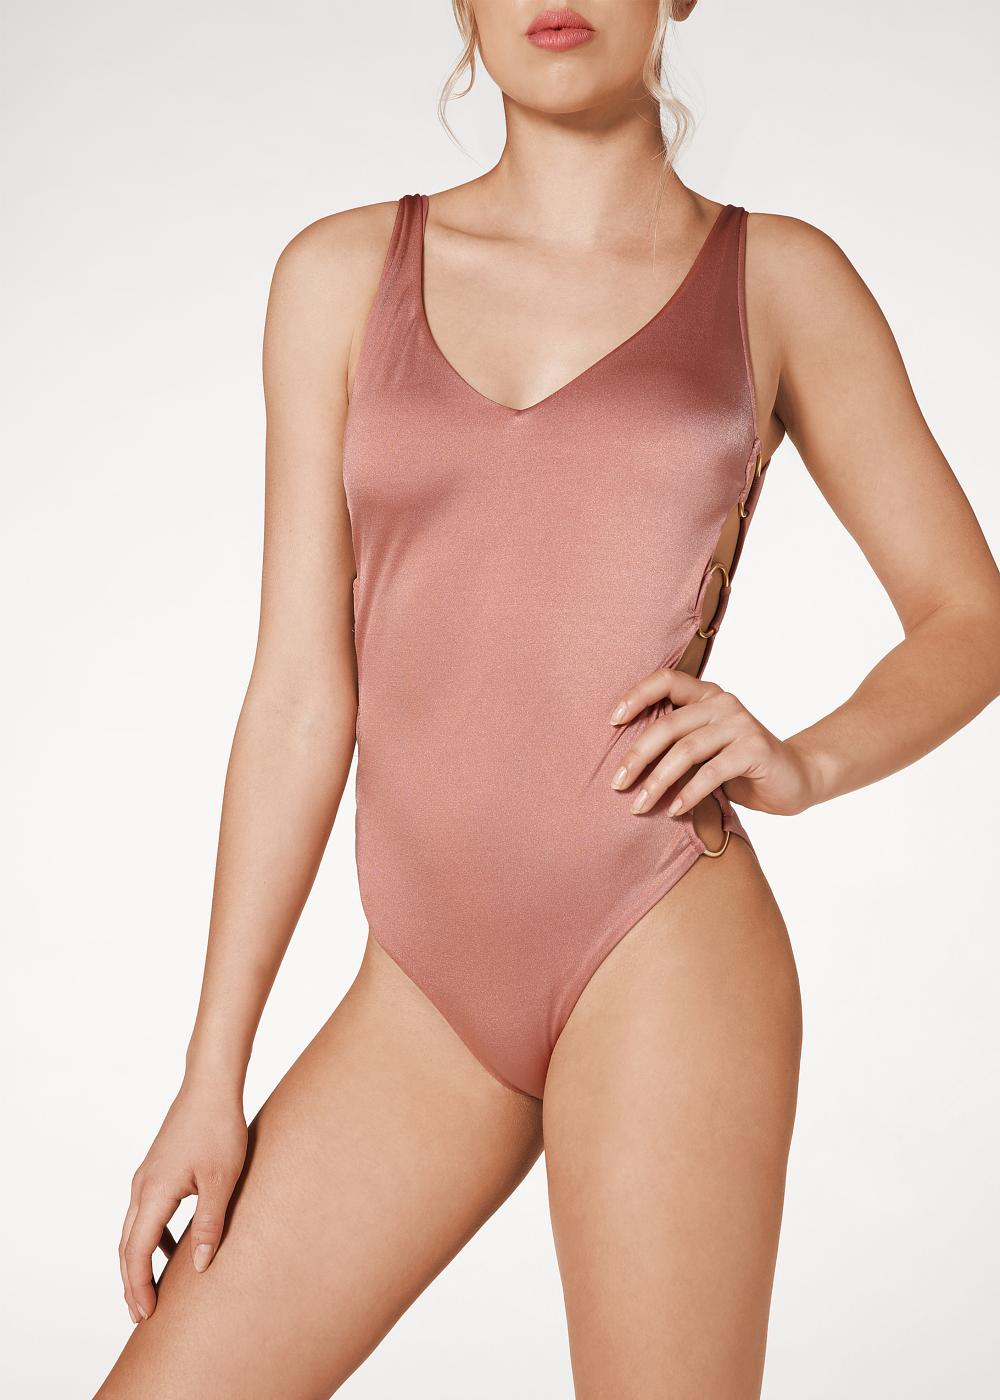 Deborah one-piece swimsuit